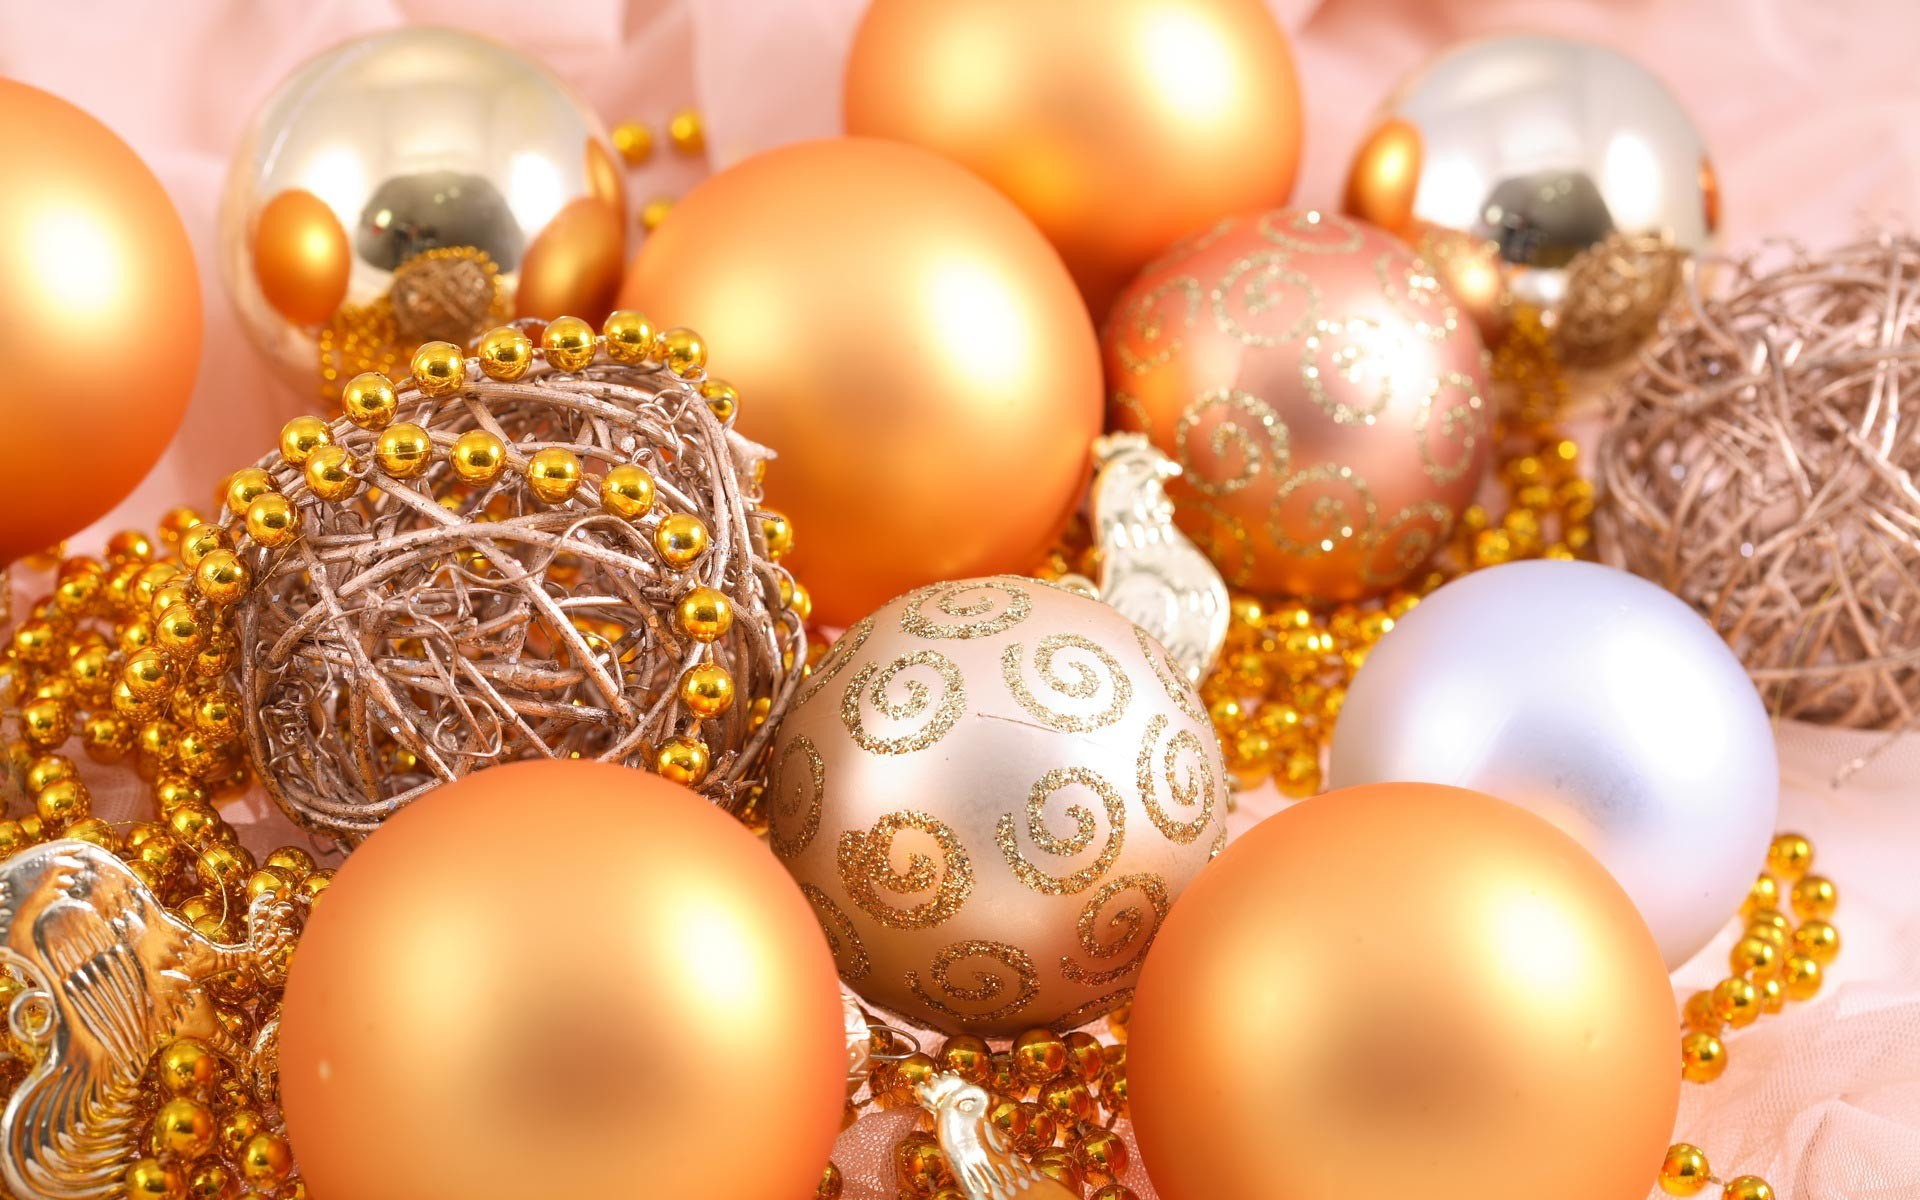 Christmas Pictures For Desktop Background 65 Images